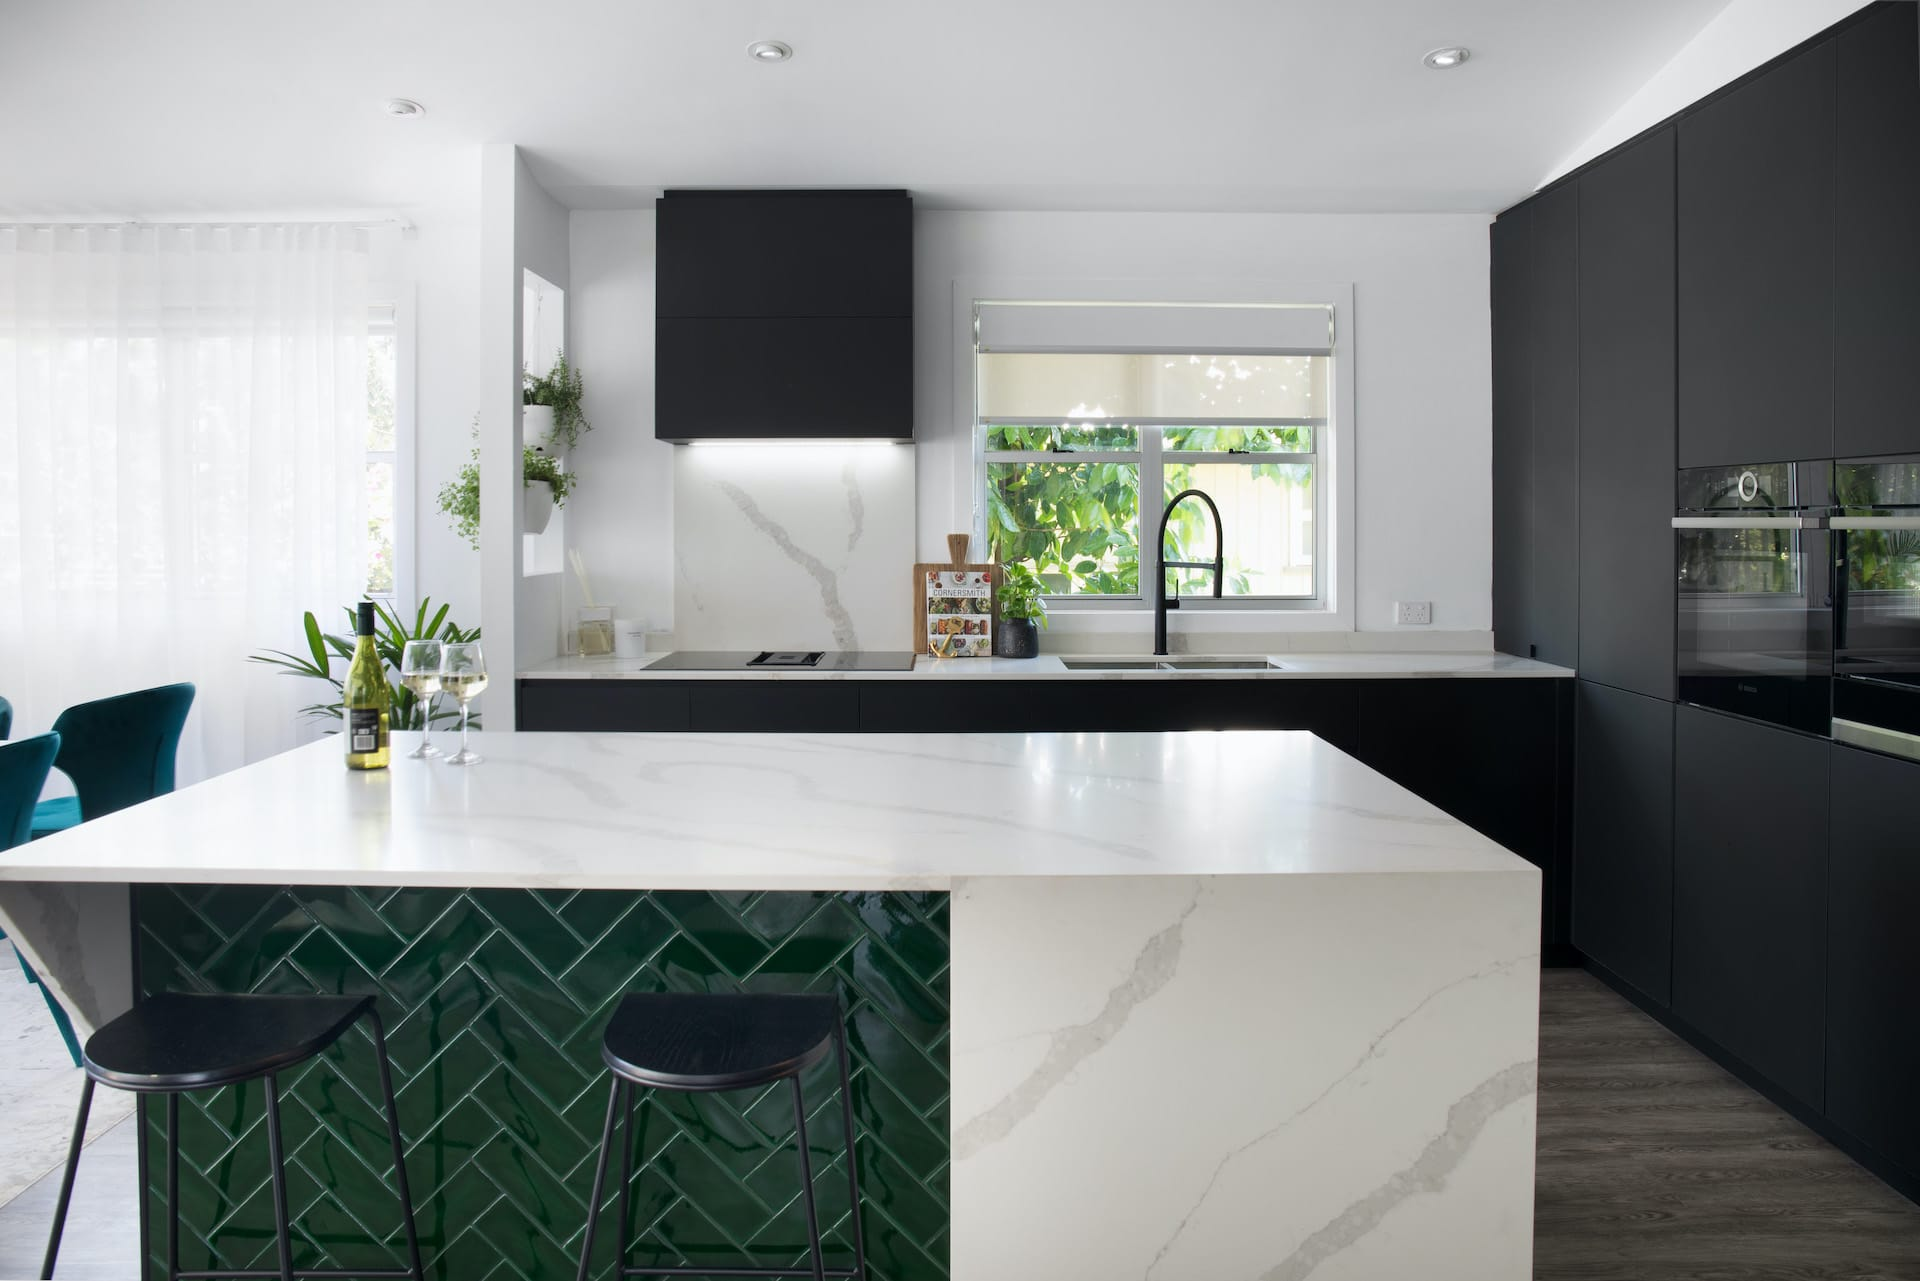 house rules 2020 tamara and rhys black kitchen with green feature tile